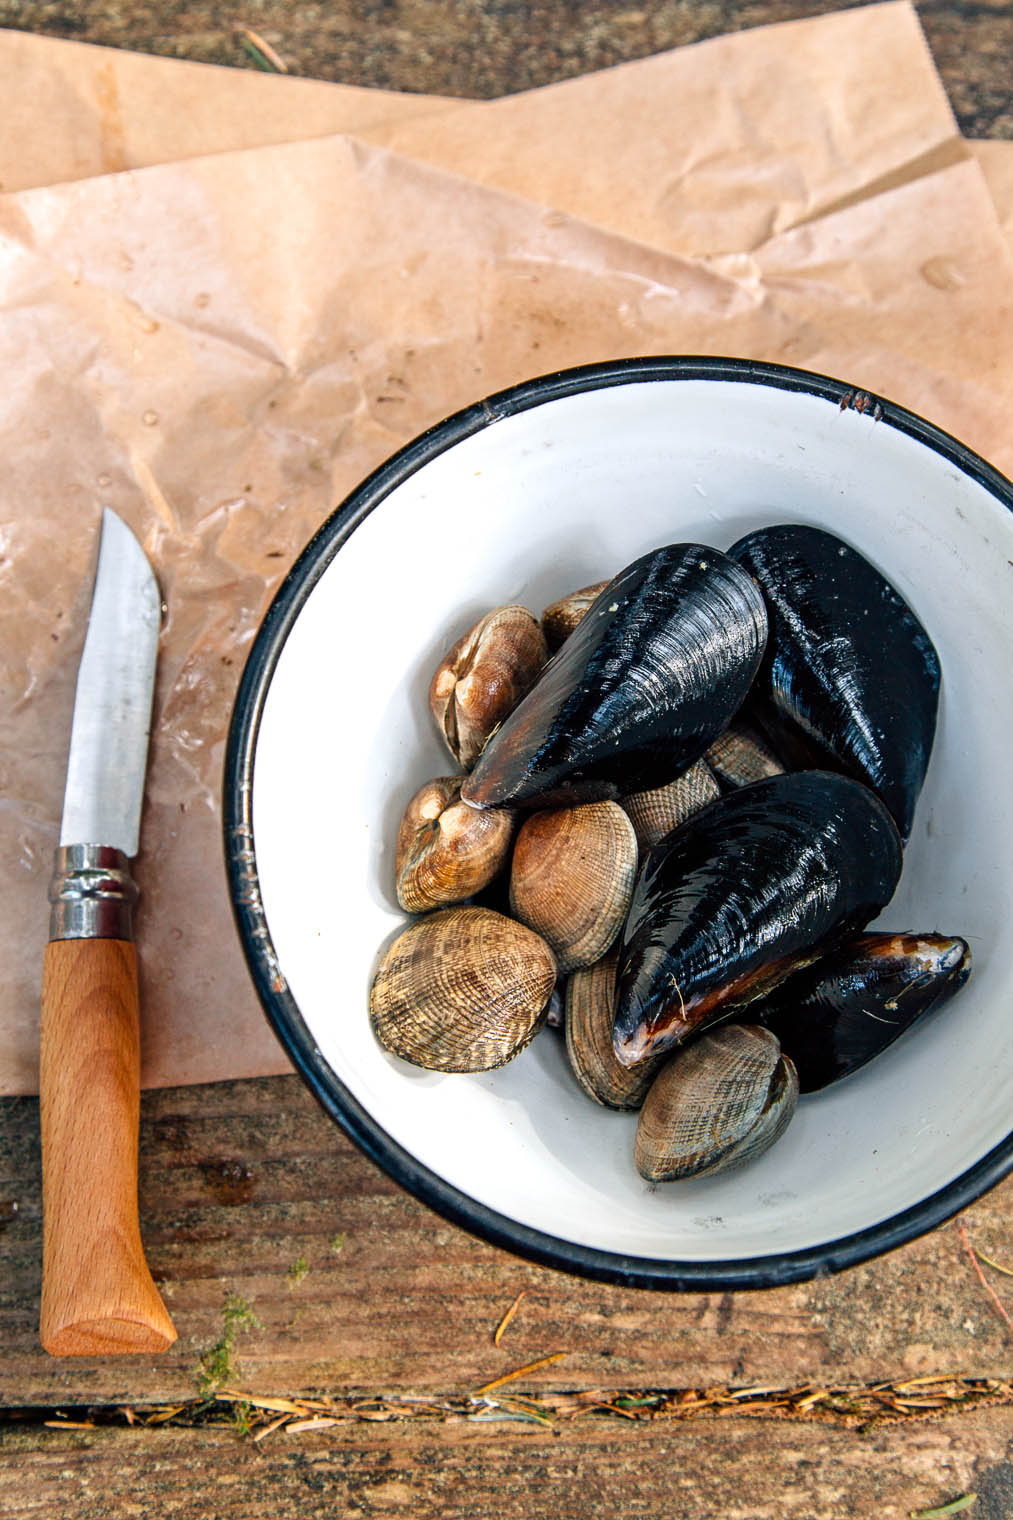 Clams and mussels in a red and white bowl